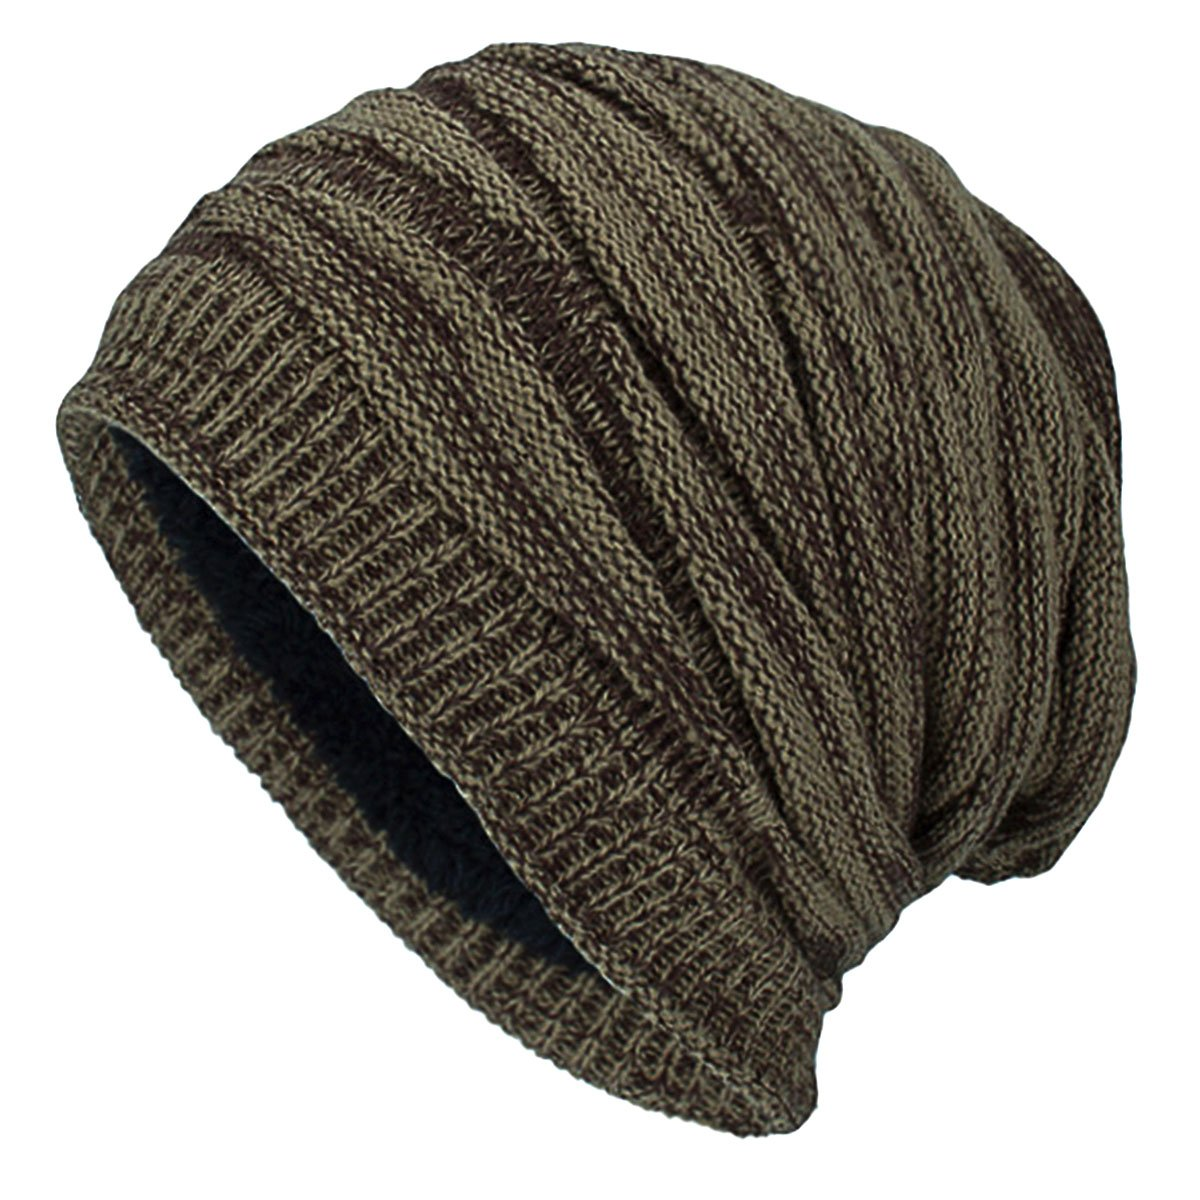 3939b12cc70 Amazon.com  Thick Warm Beanie Hat - iParaAiluRy Slouchy Beanie Knitted Hat  for Women Men - Winter Fleece Lined Wool Baggy Slouch Skull Cap  Sports    ...